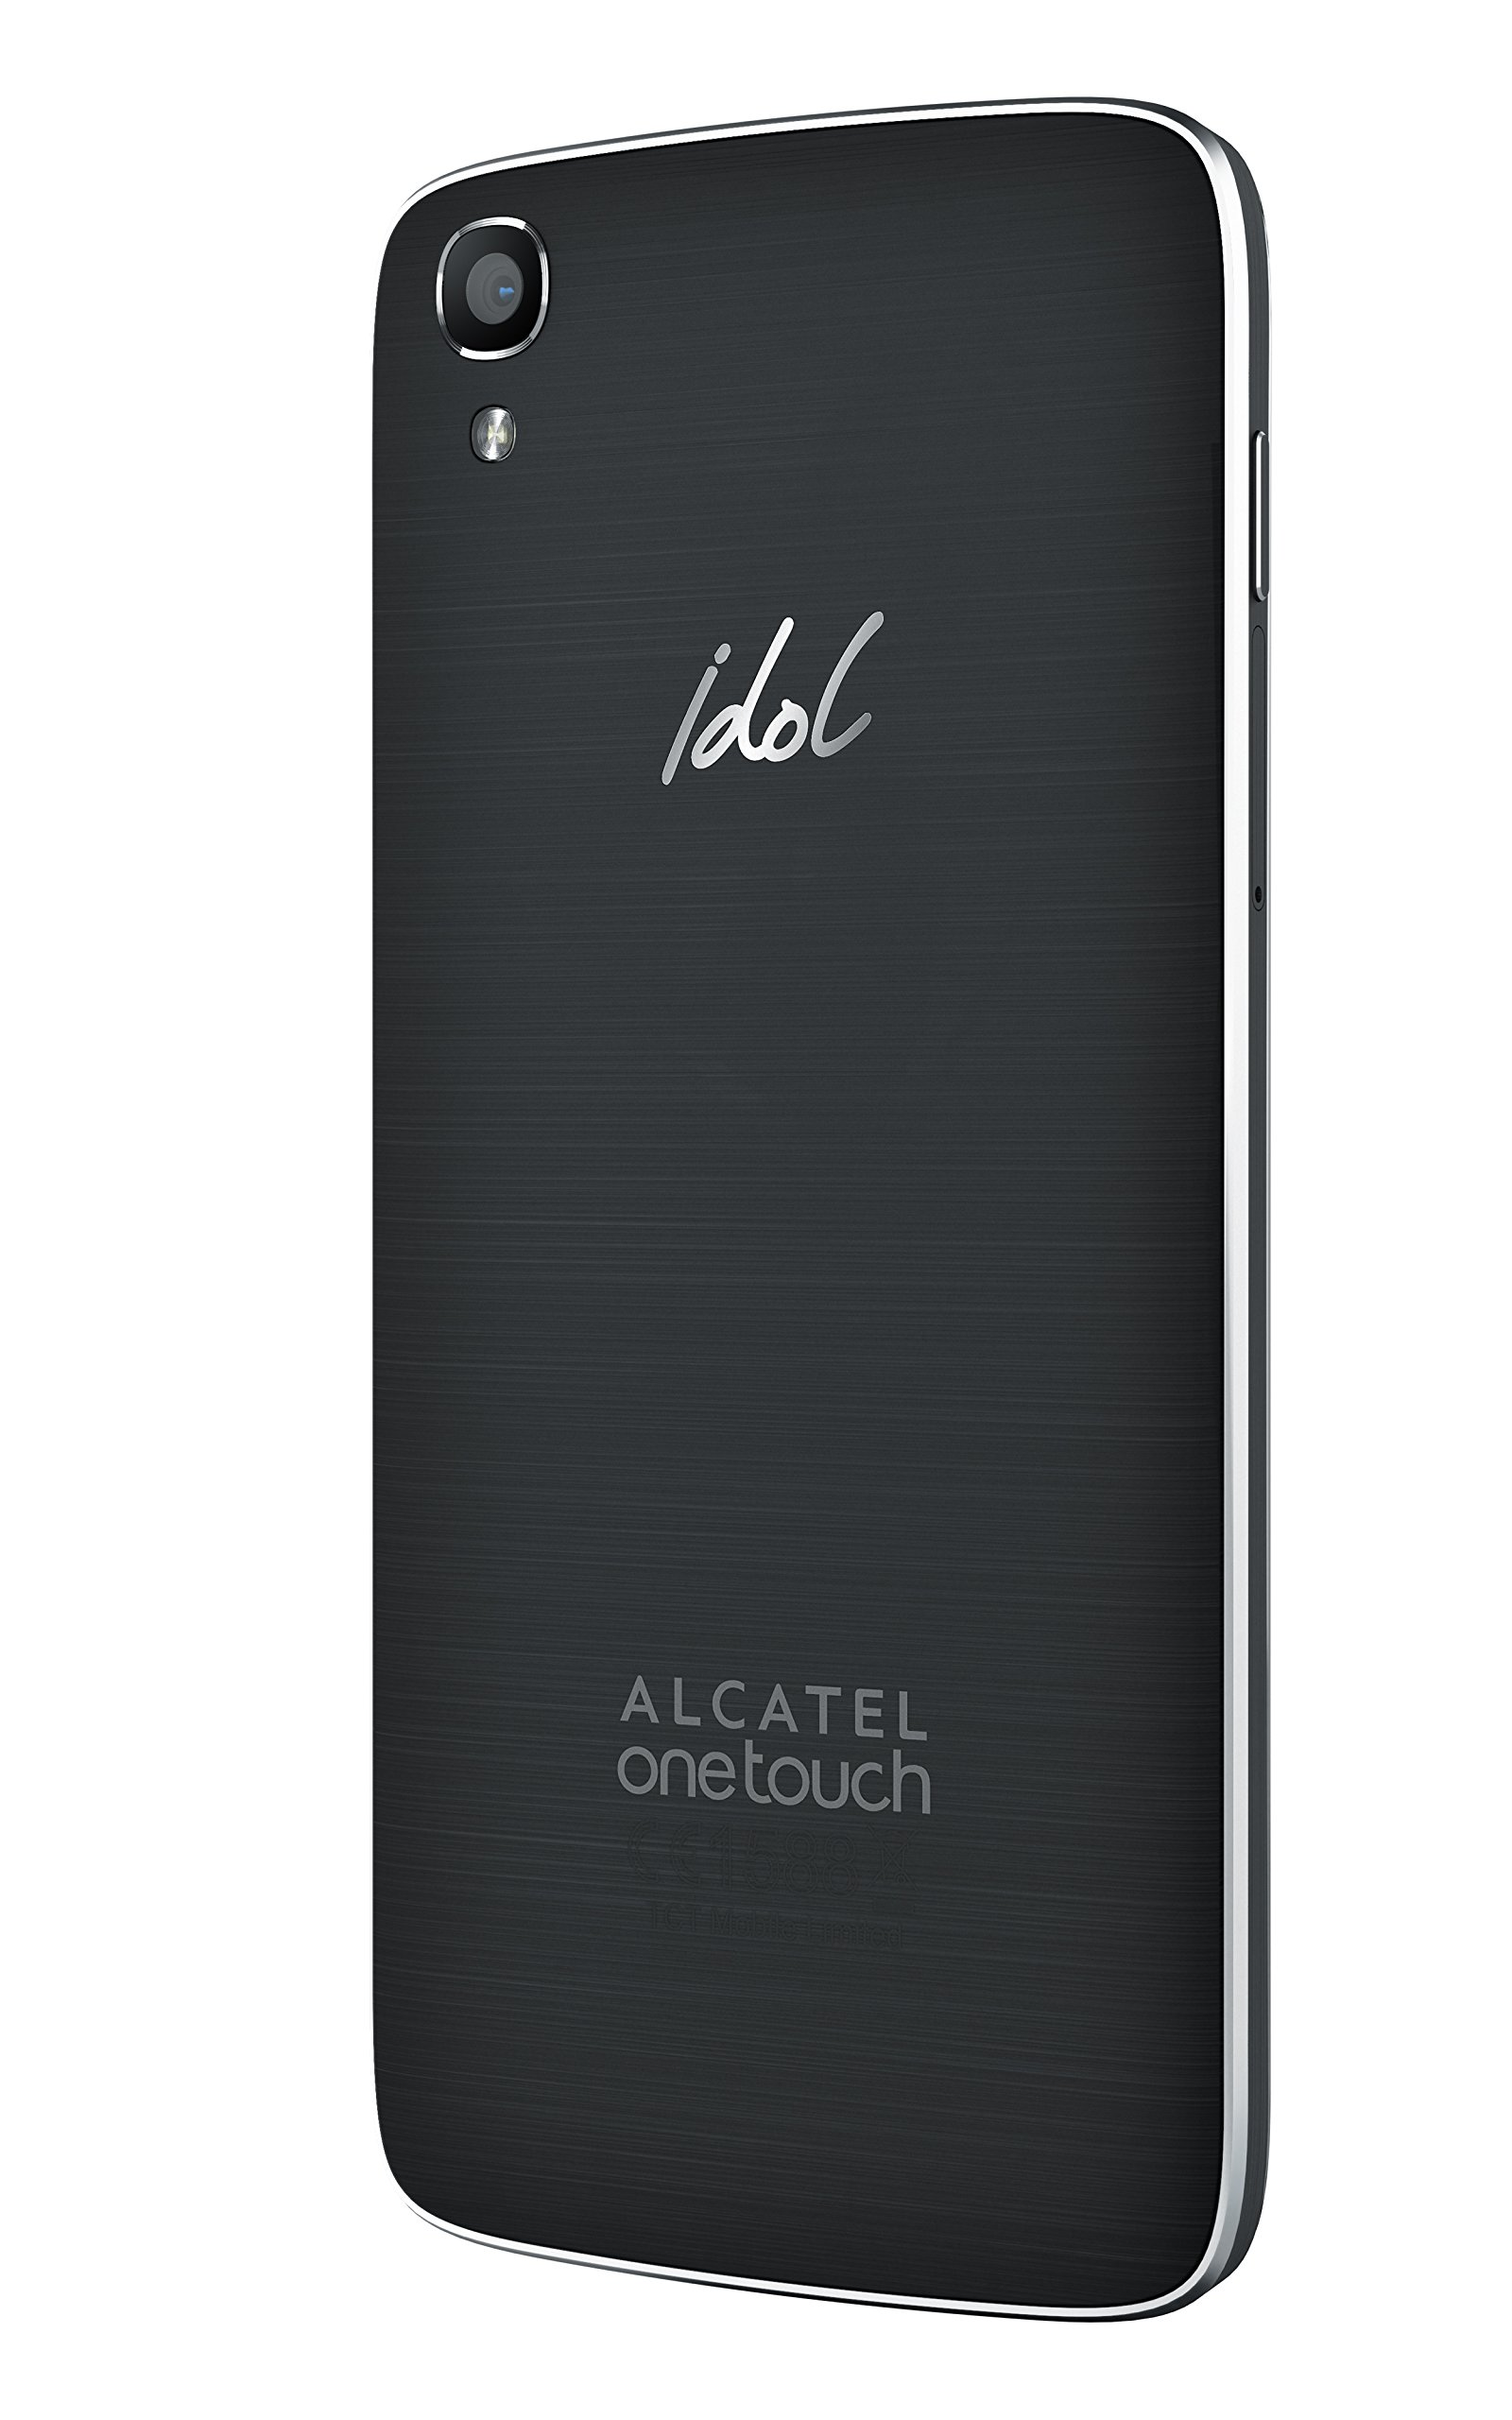 Alcatel onetouch Idol 3 5,5'''' dark grey Dual SIM unlocked